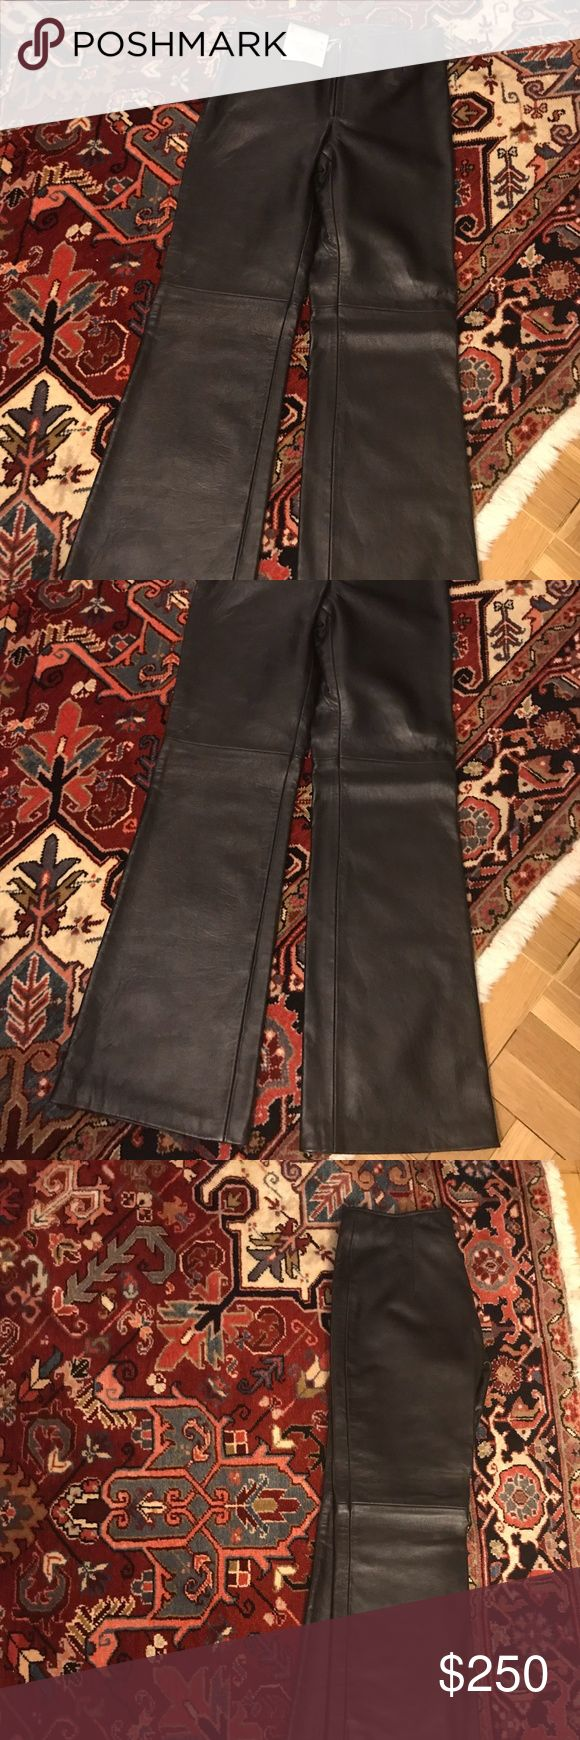 NWT 100% Genuine Lambskin Leather Pants Brand new with tags! 100% Genuine Lambskin Leather Pants - style is flared. Would fit size xs/24 to 25 inch waist. Novin Leather Pants